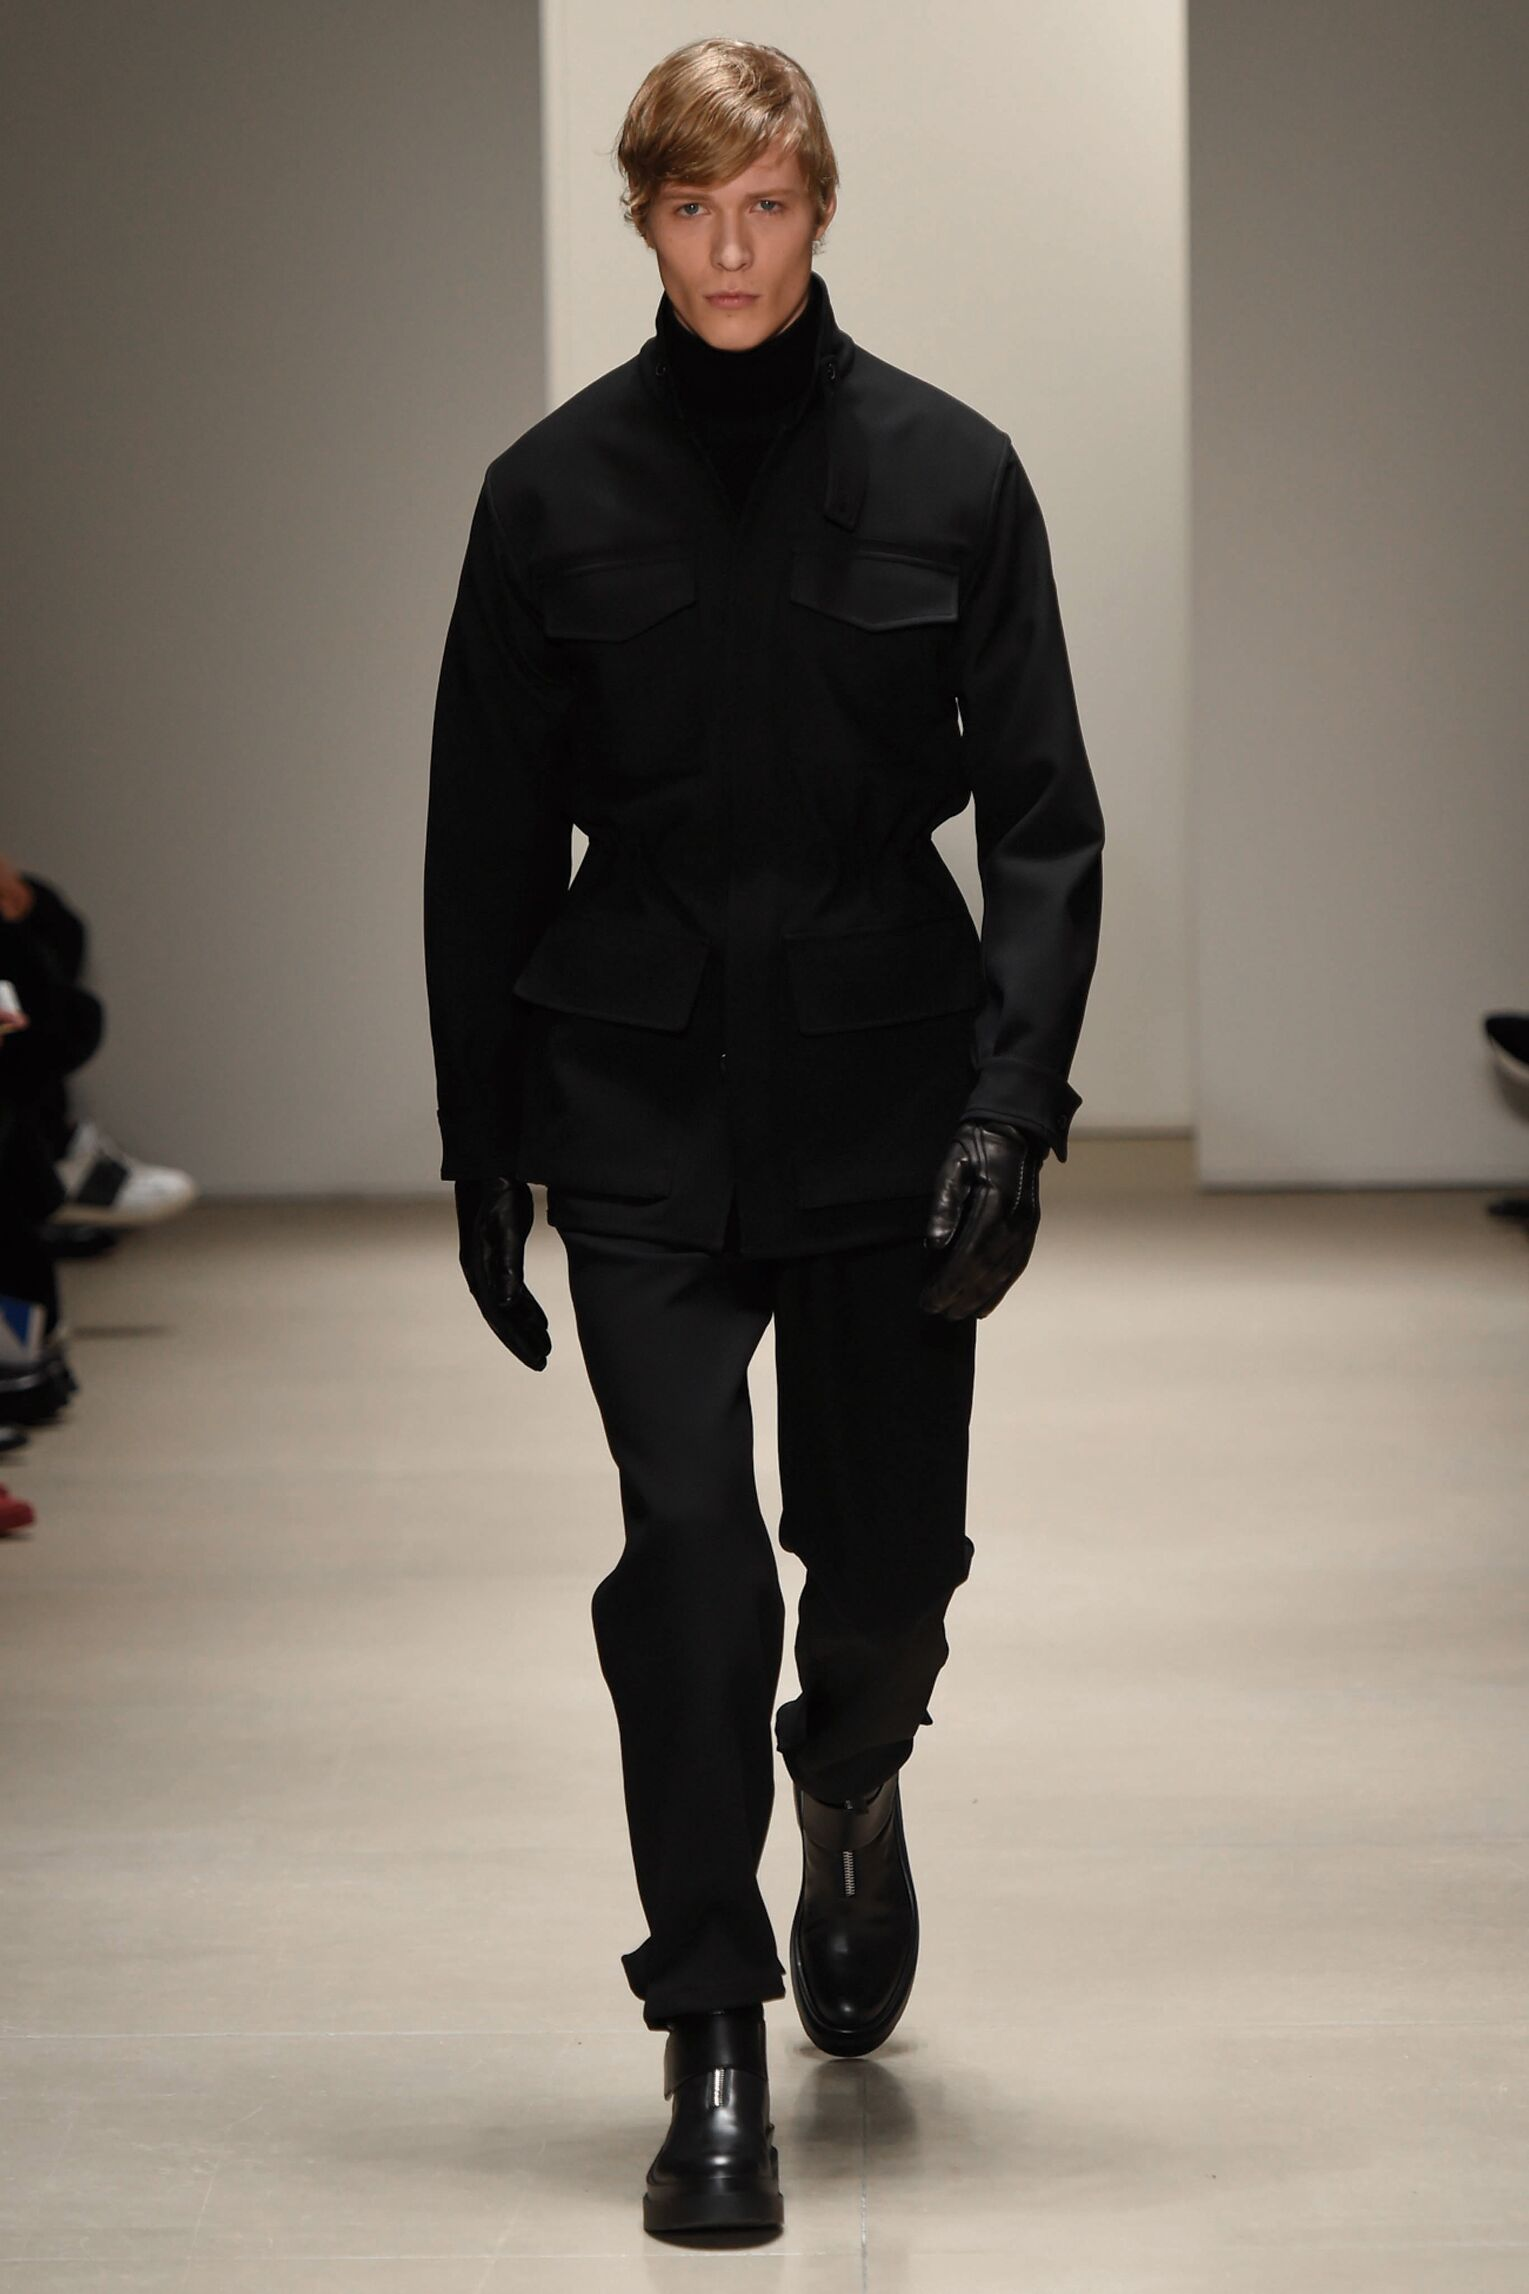 Catwalk Jil Sander Fall Winter 2015 16 Men's Collection Milano Fashion Week